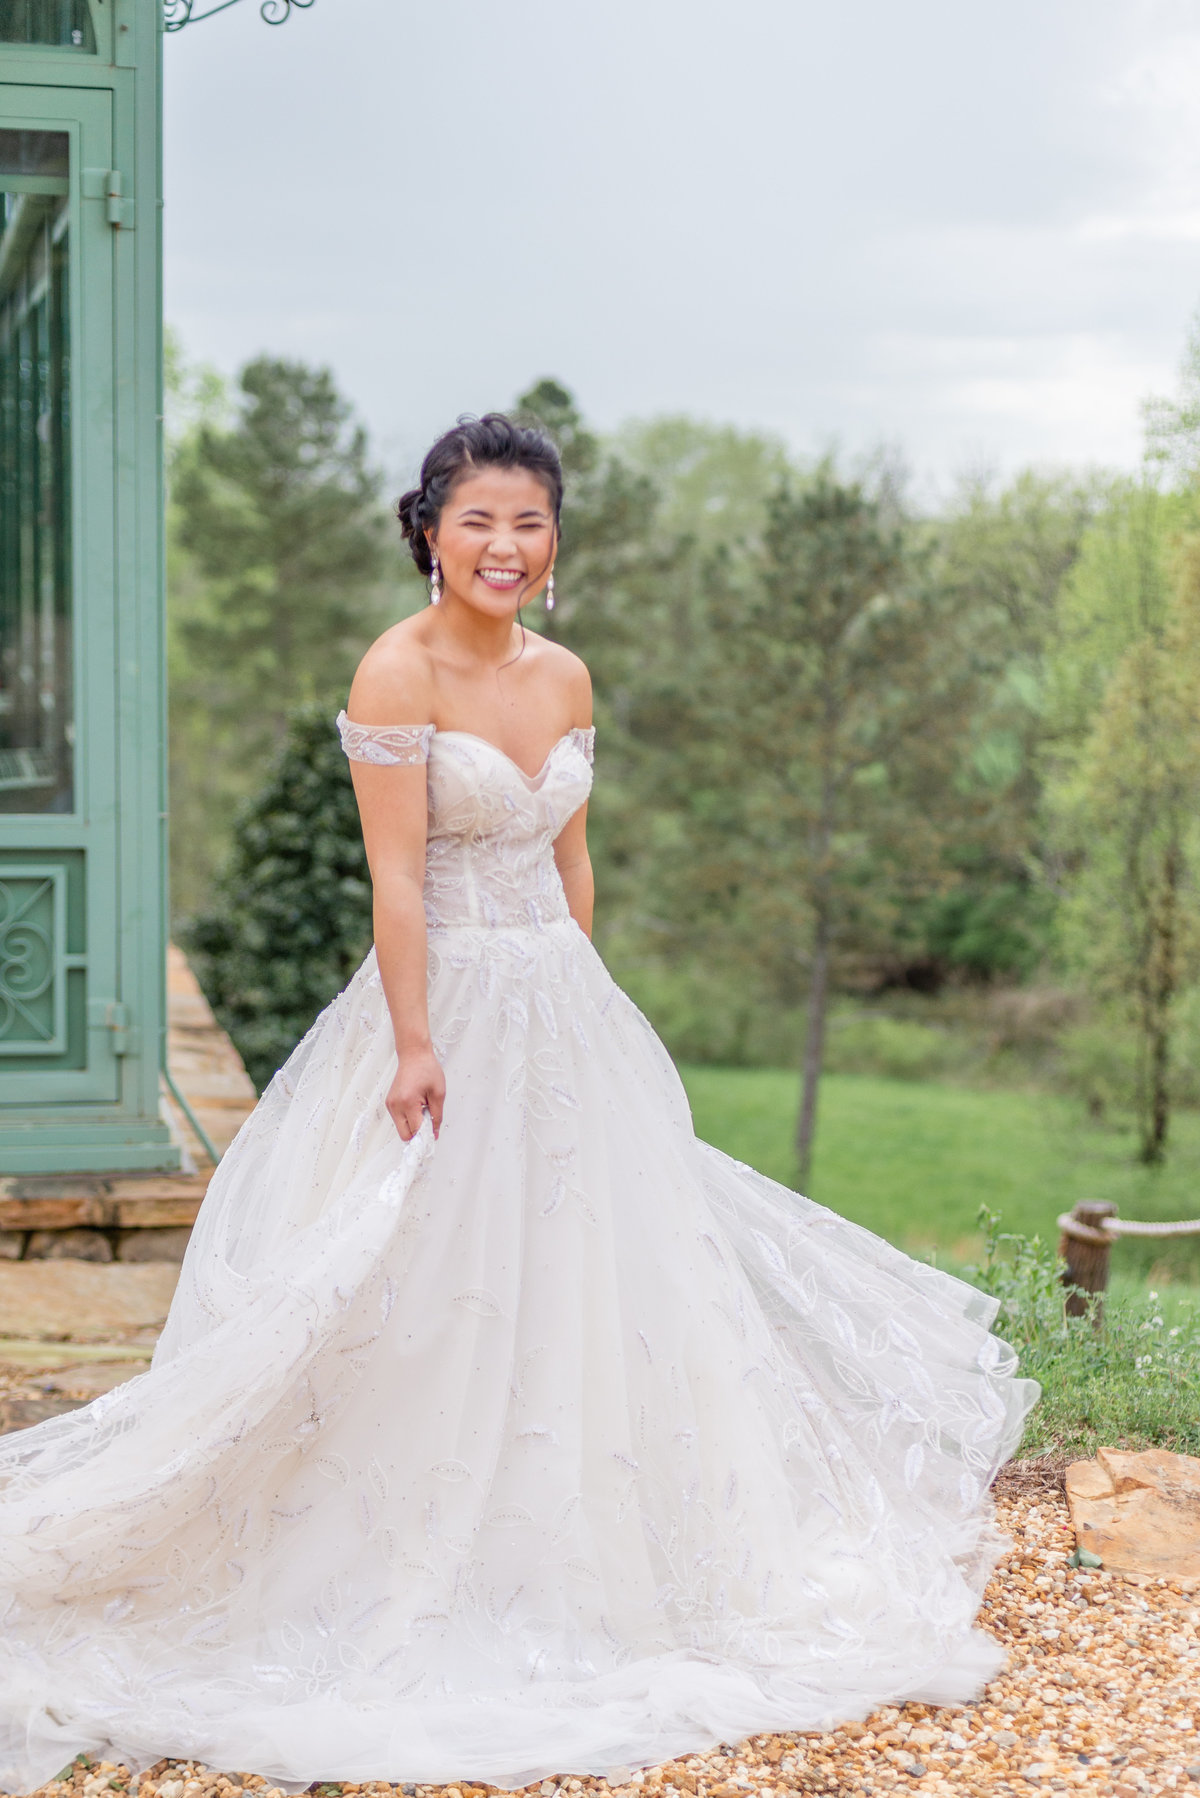 A petite bride twirls her wedding dress while laughing next to a greenhouse in Georgia